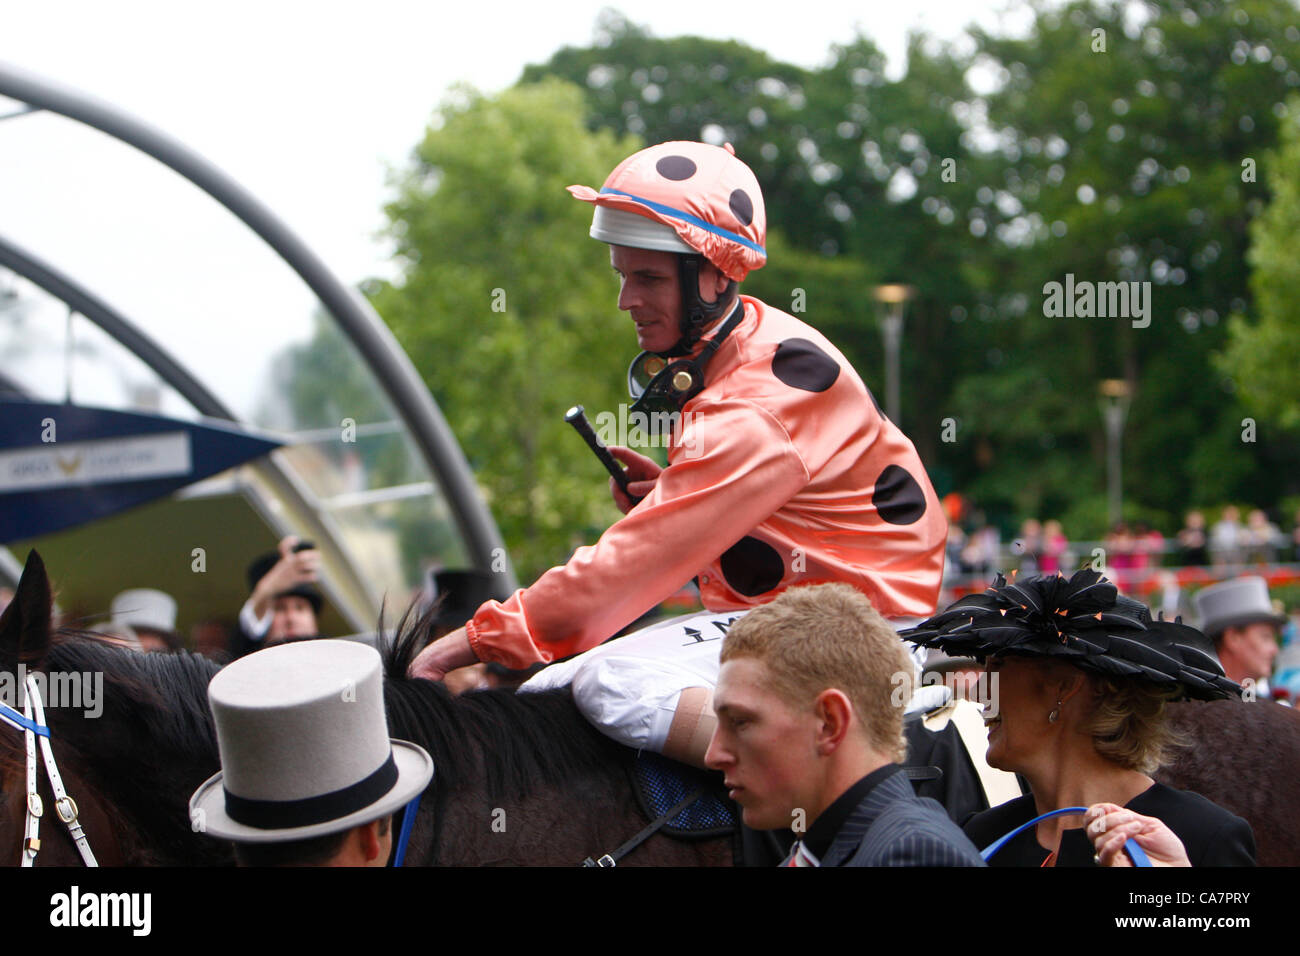 23.06.12 Ascot, Windsor, ENGLAND:  Luke Nolan on Black Caviar in the winners circle for The Diamond Jubilee Stakes - Stock Image